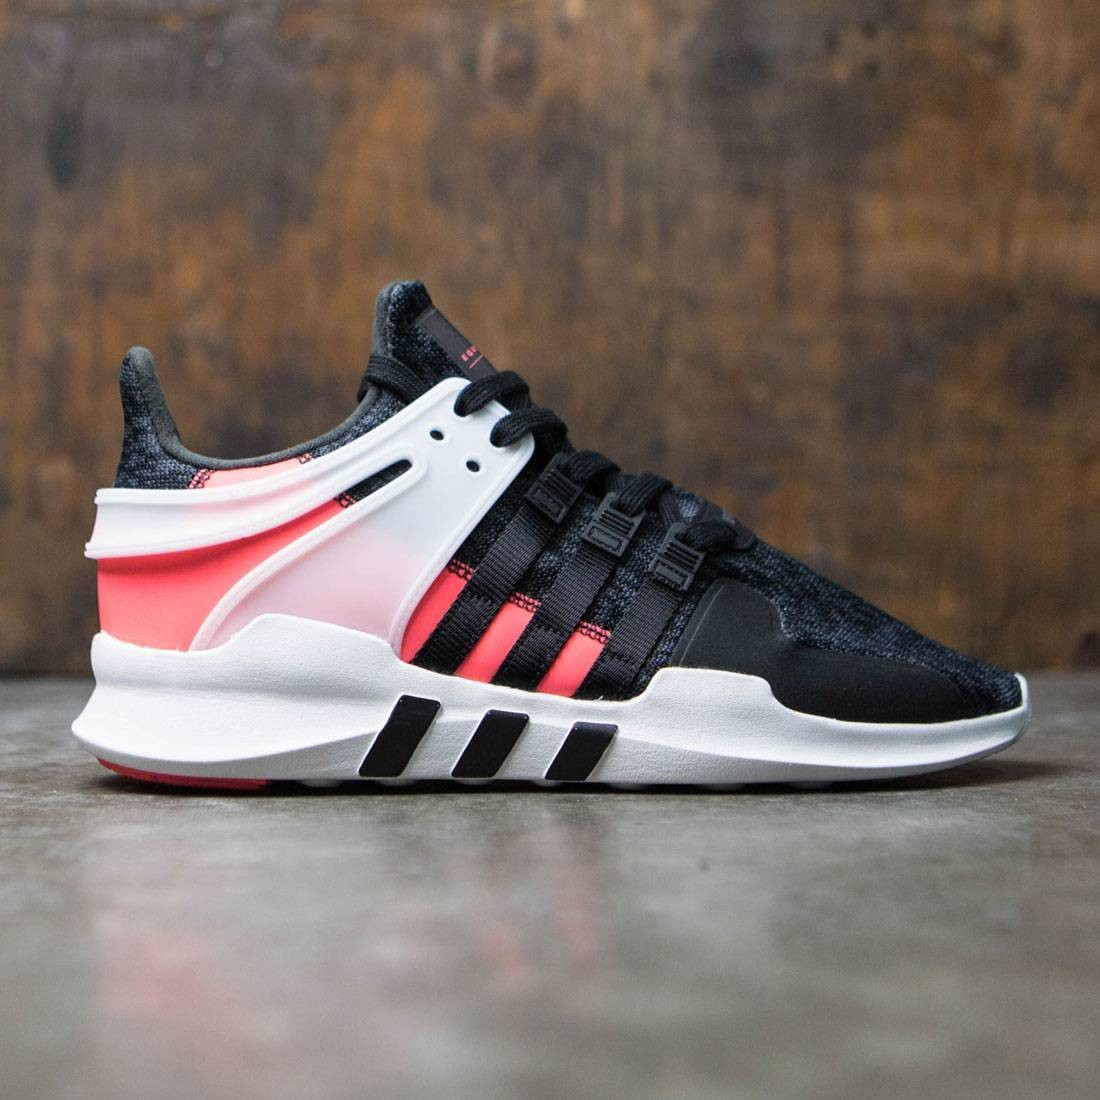 pretty nice 8aff7 da95a adidas men eqt support adv black core black turbo red